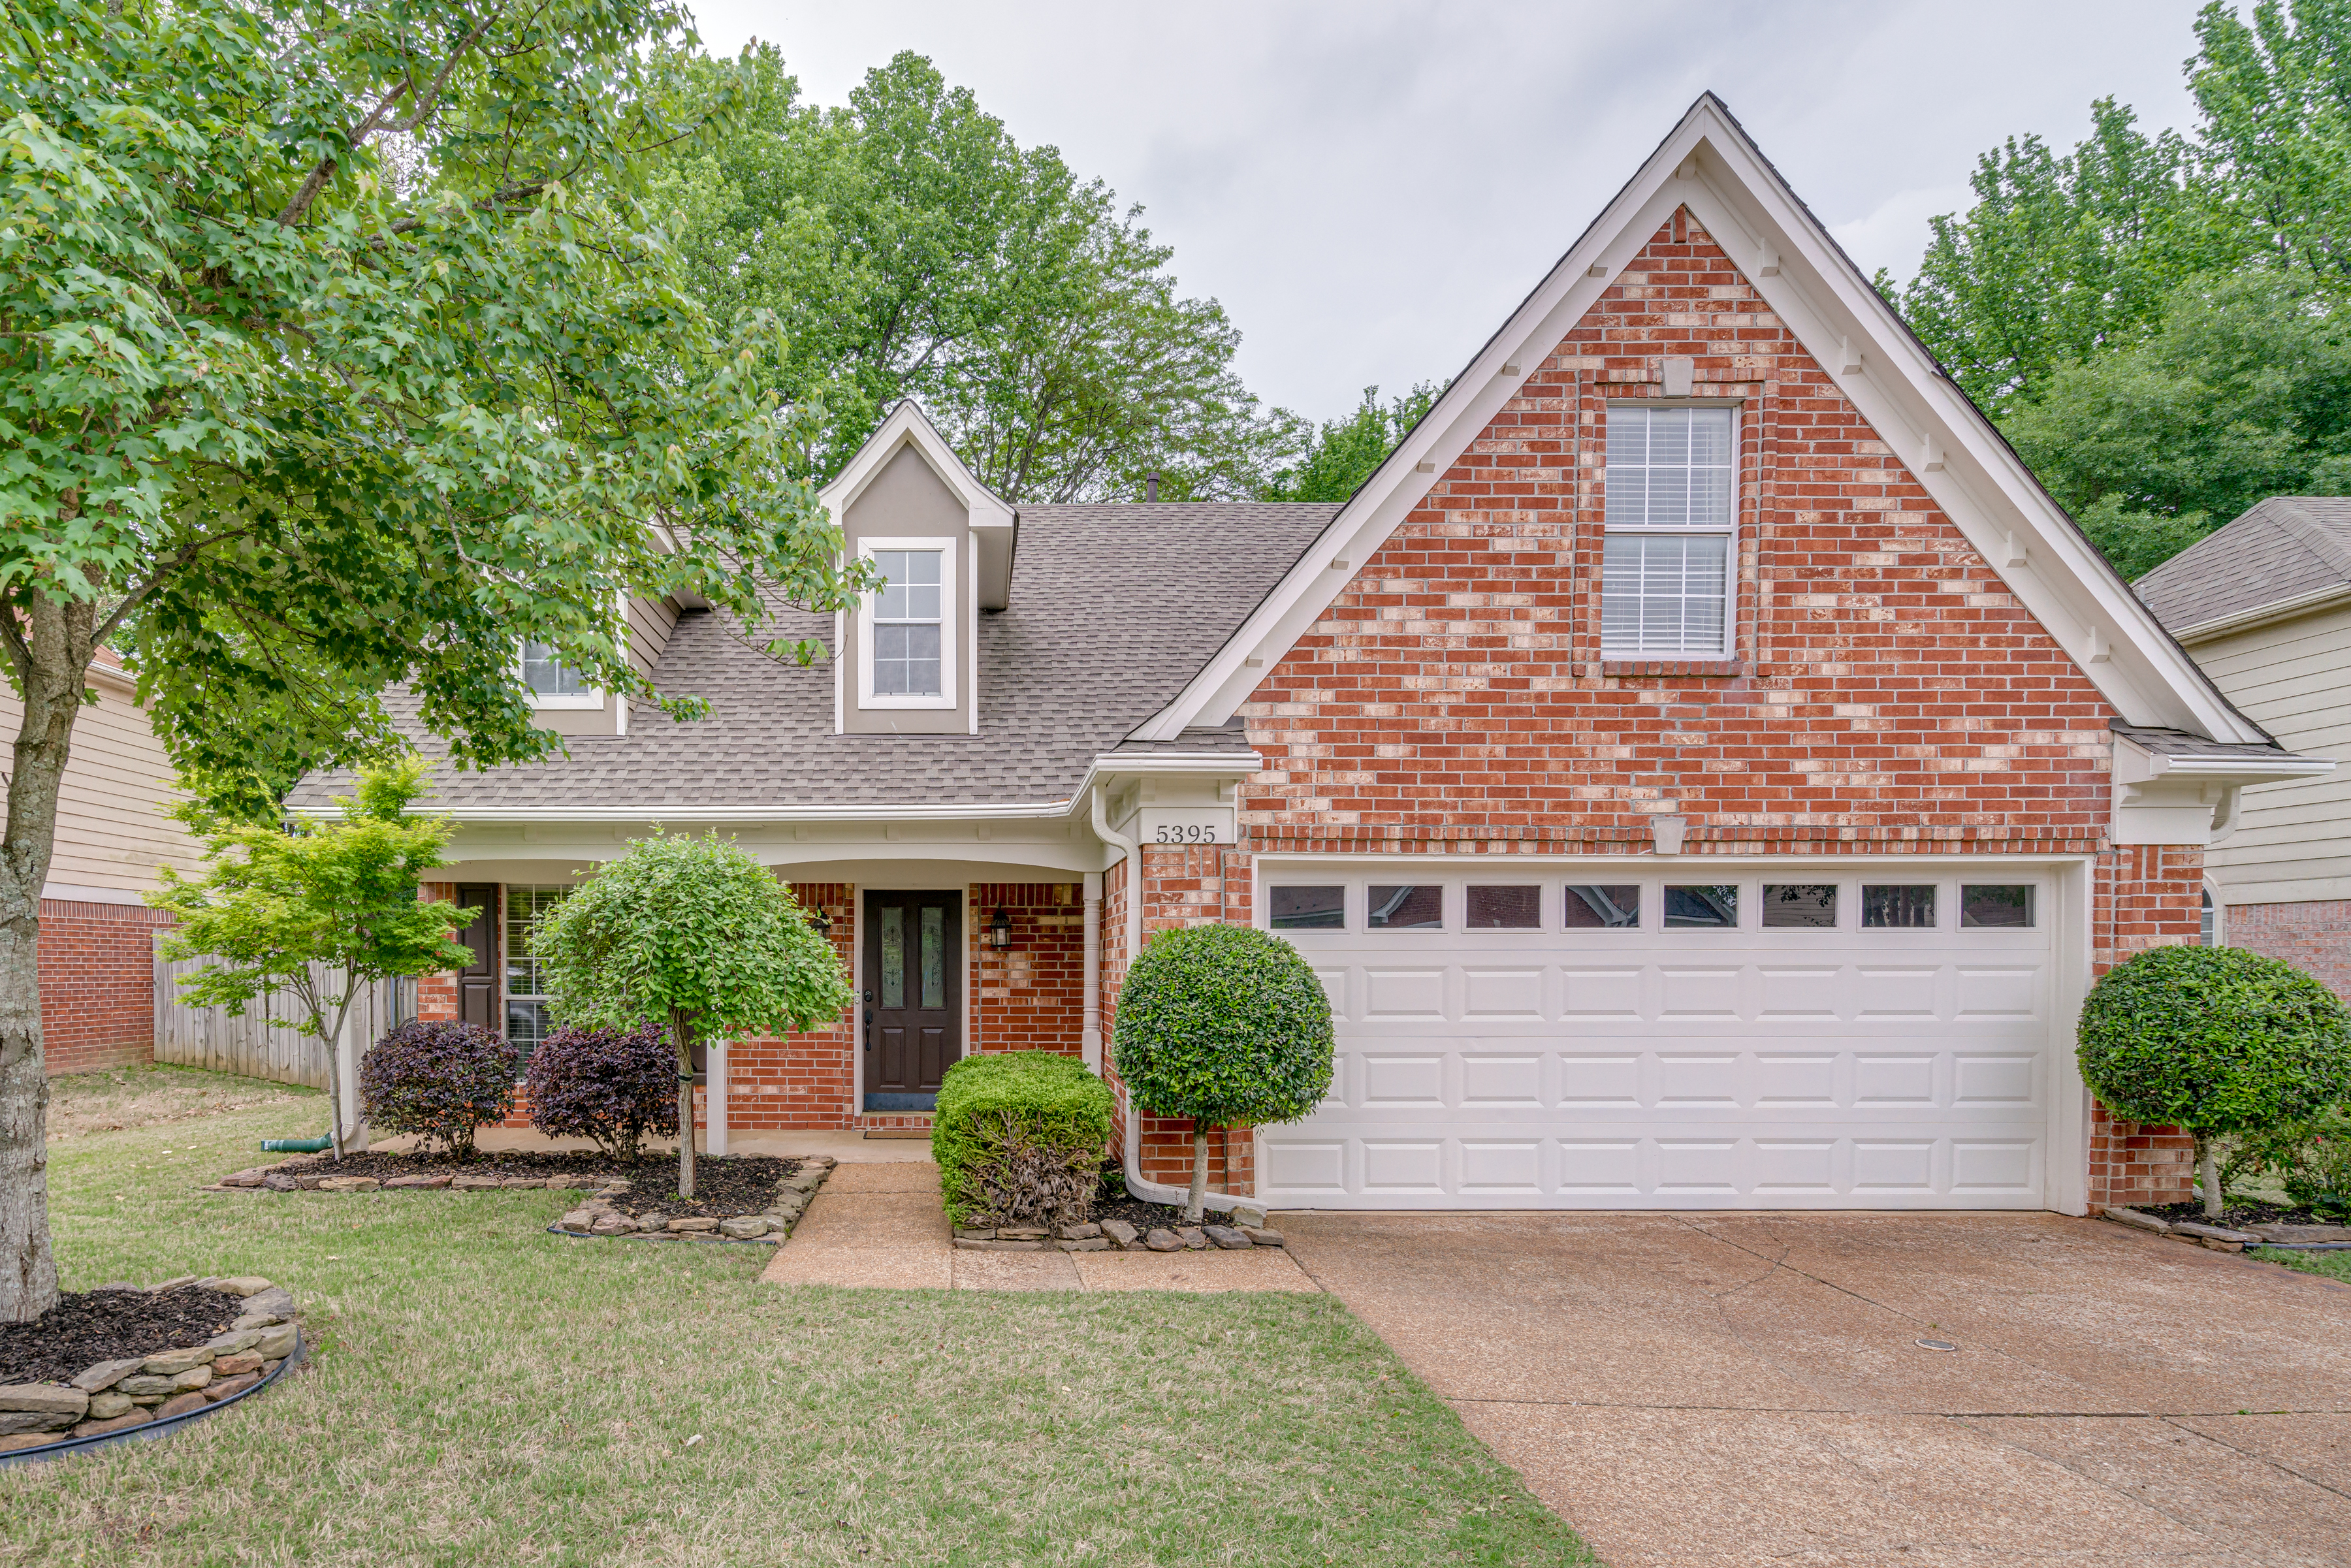 Latest homes for sale in Arlington, TN